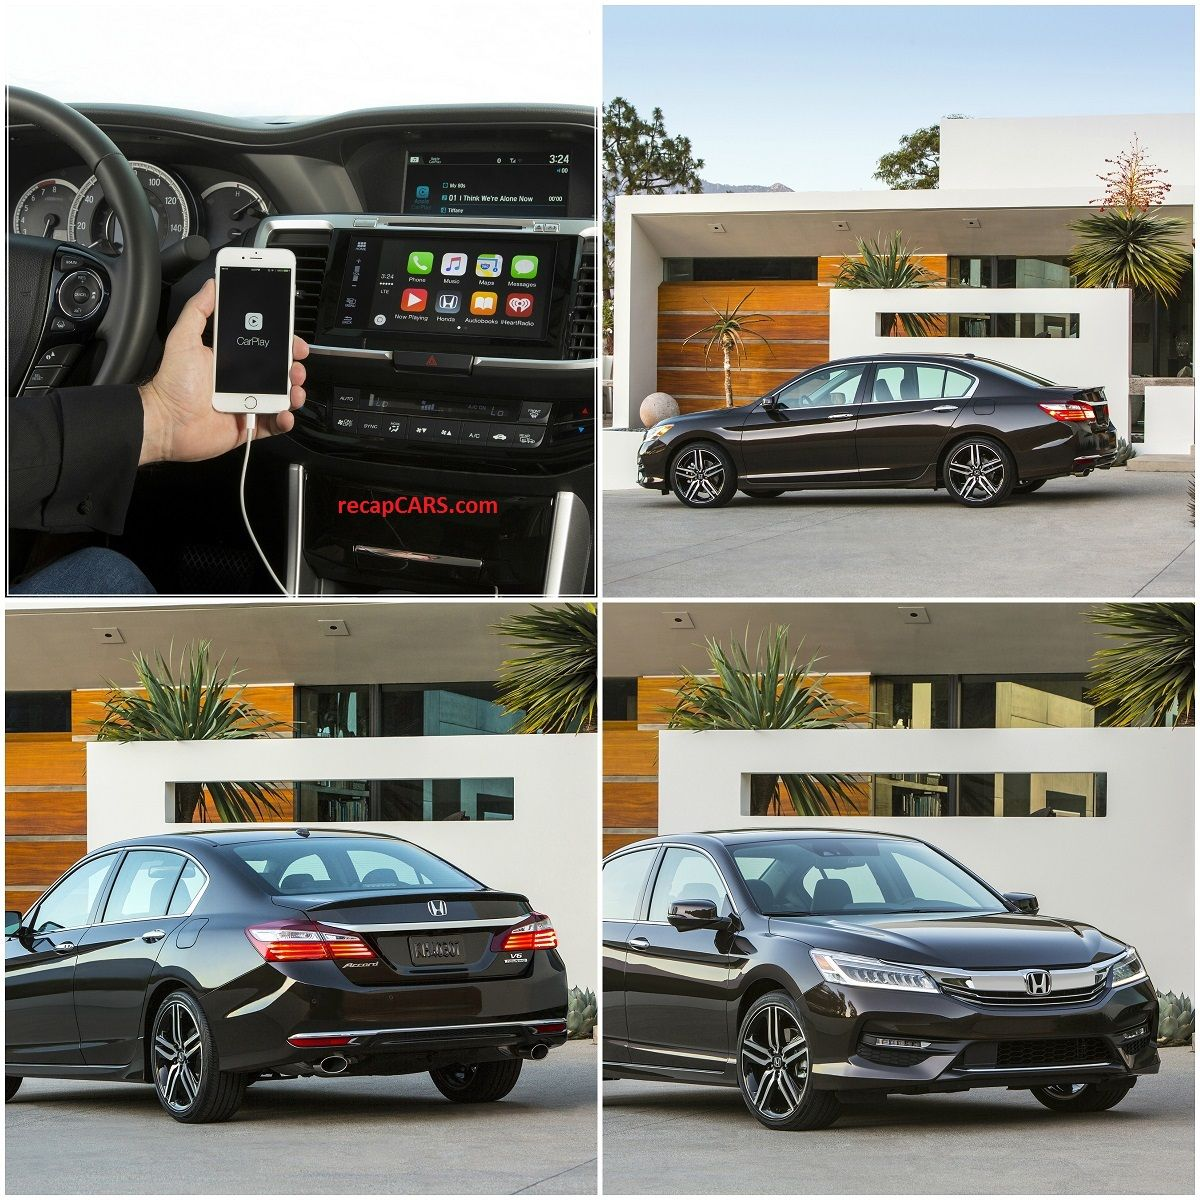 2016 Honda Accord with Apple CarPlay and Android Auto